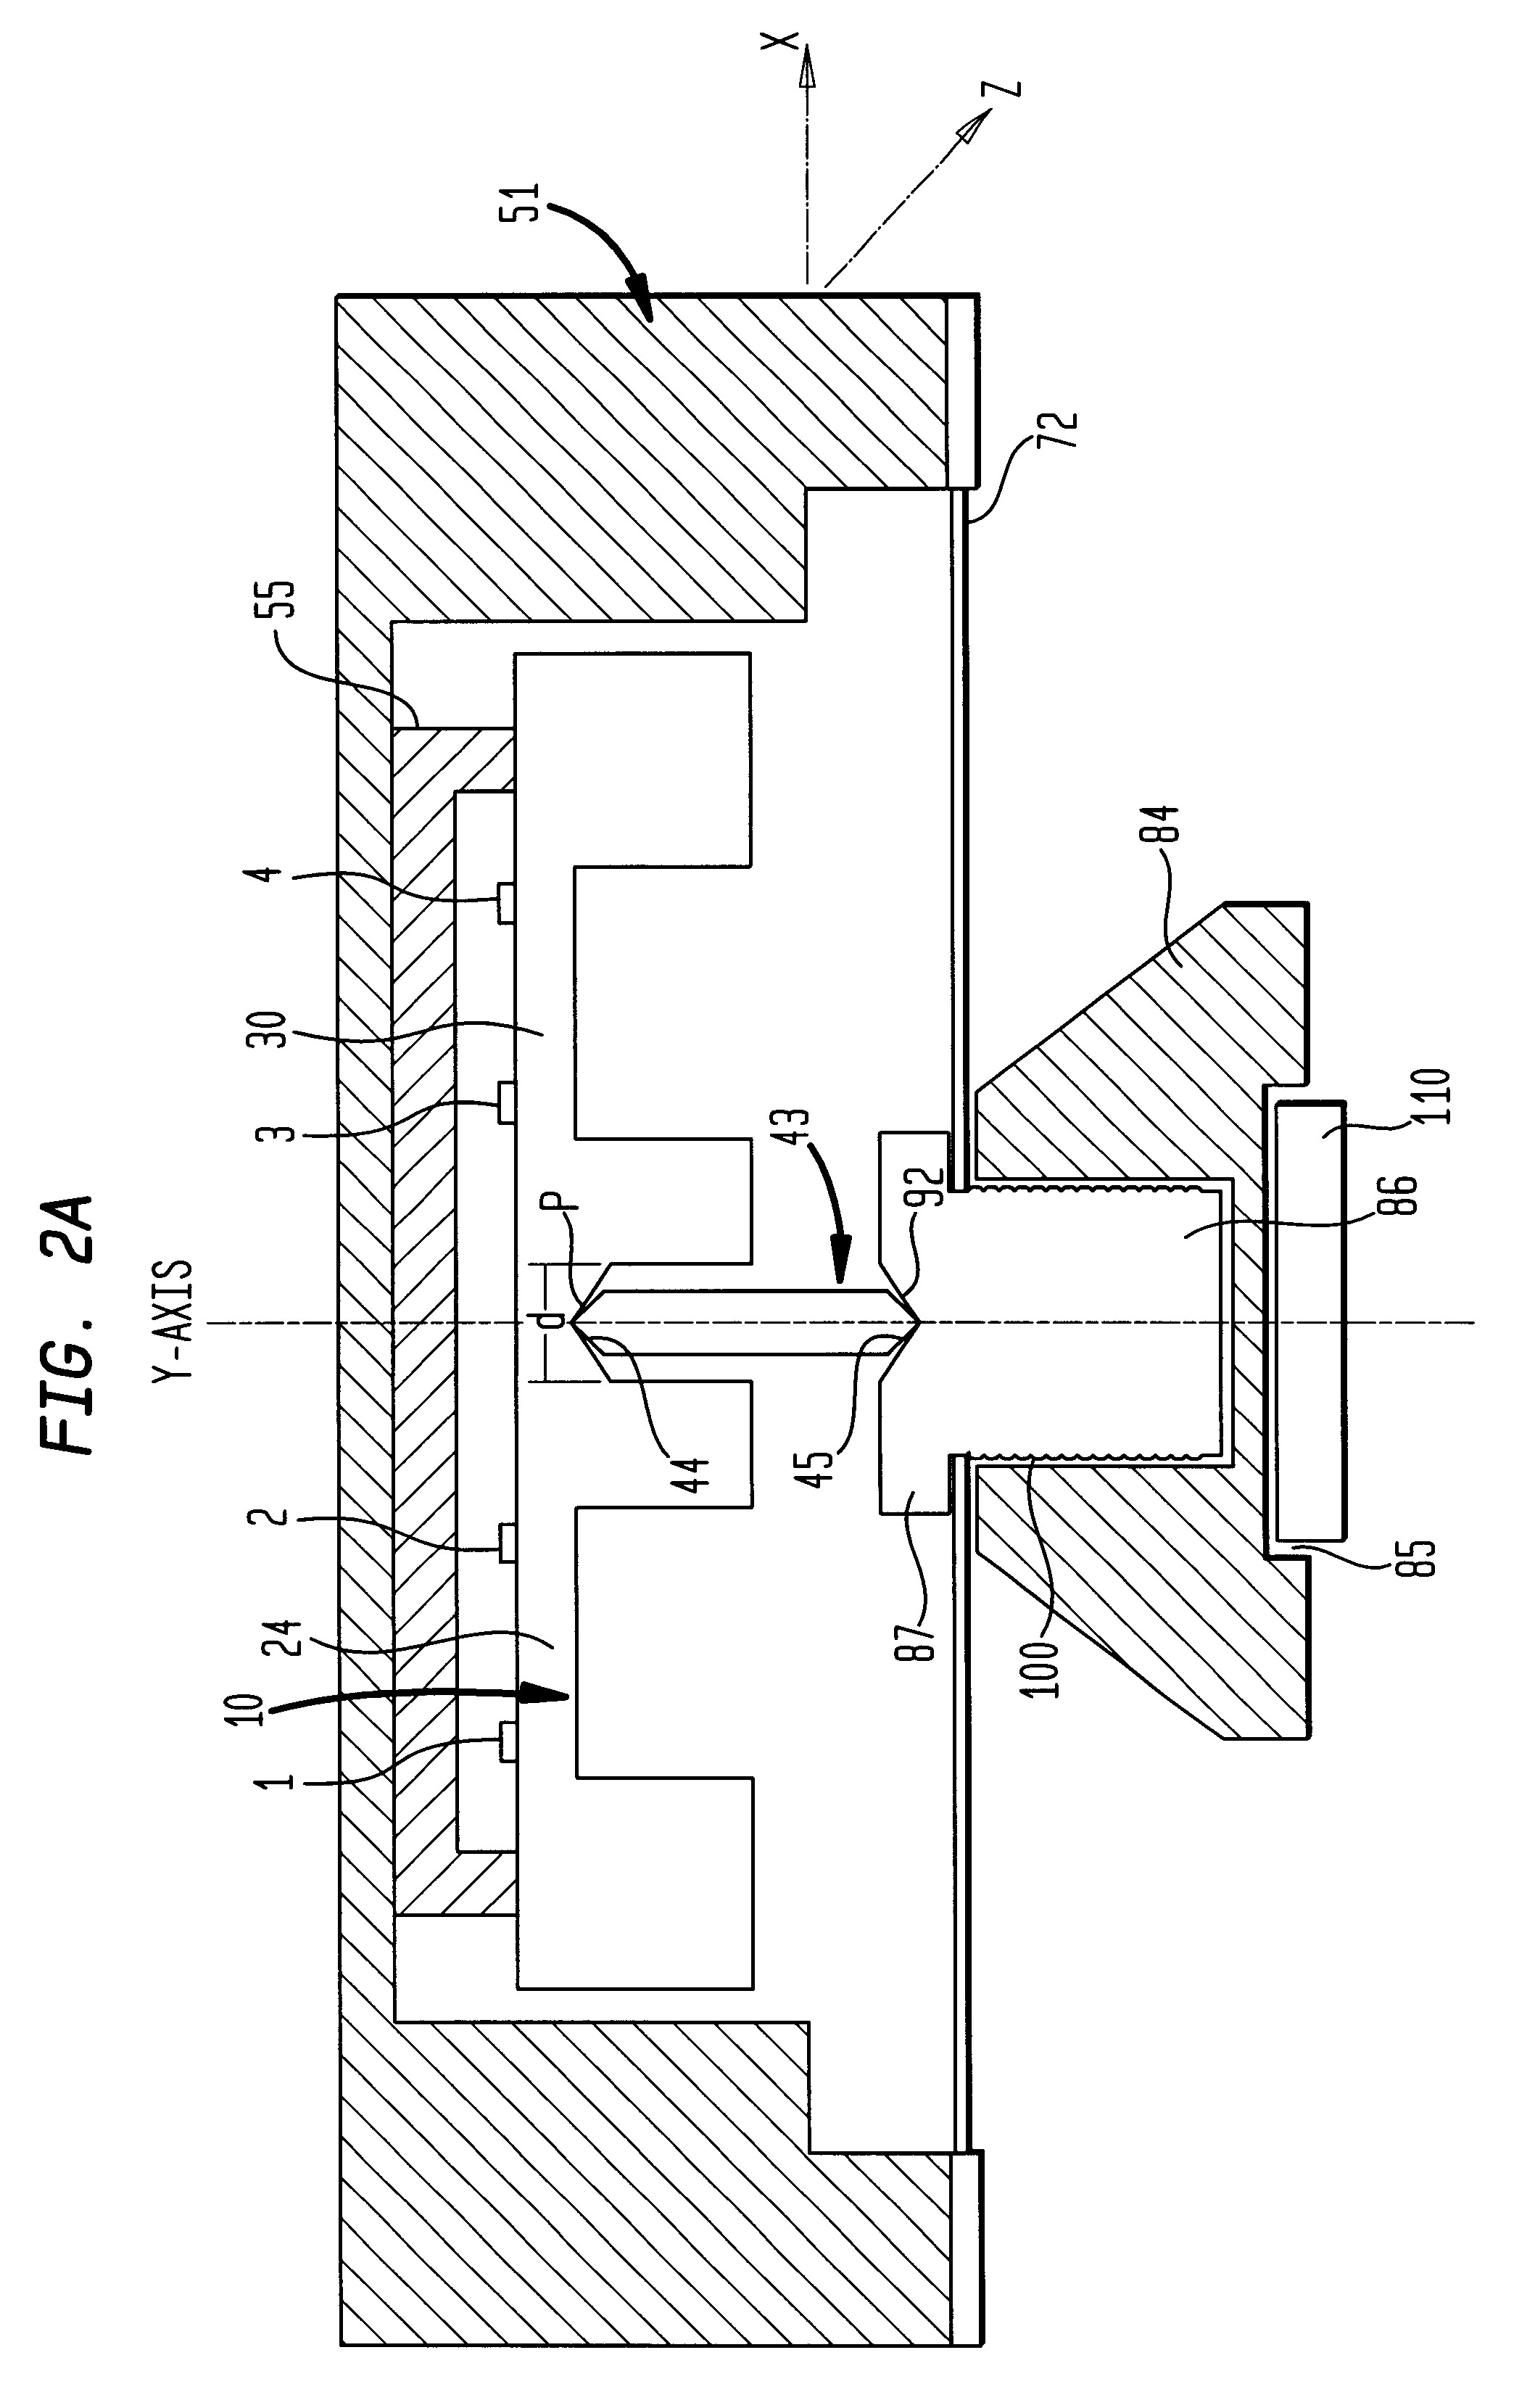 ponent Inexpensive Load Cell Mechtech Tutorial Building And Patent Us With Bossed Sensor Plate For An